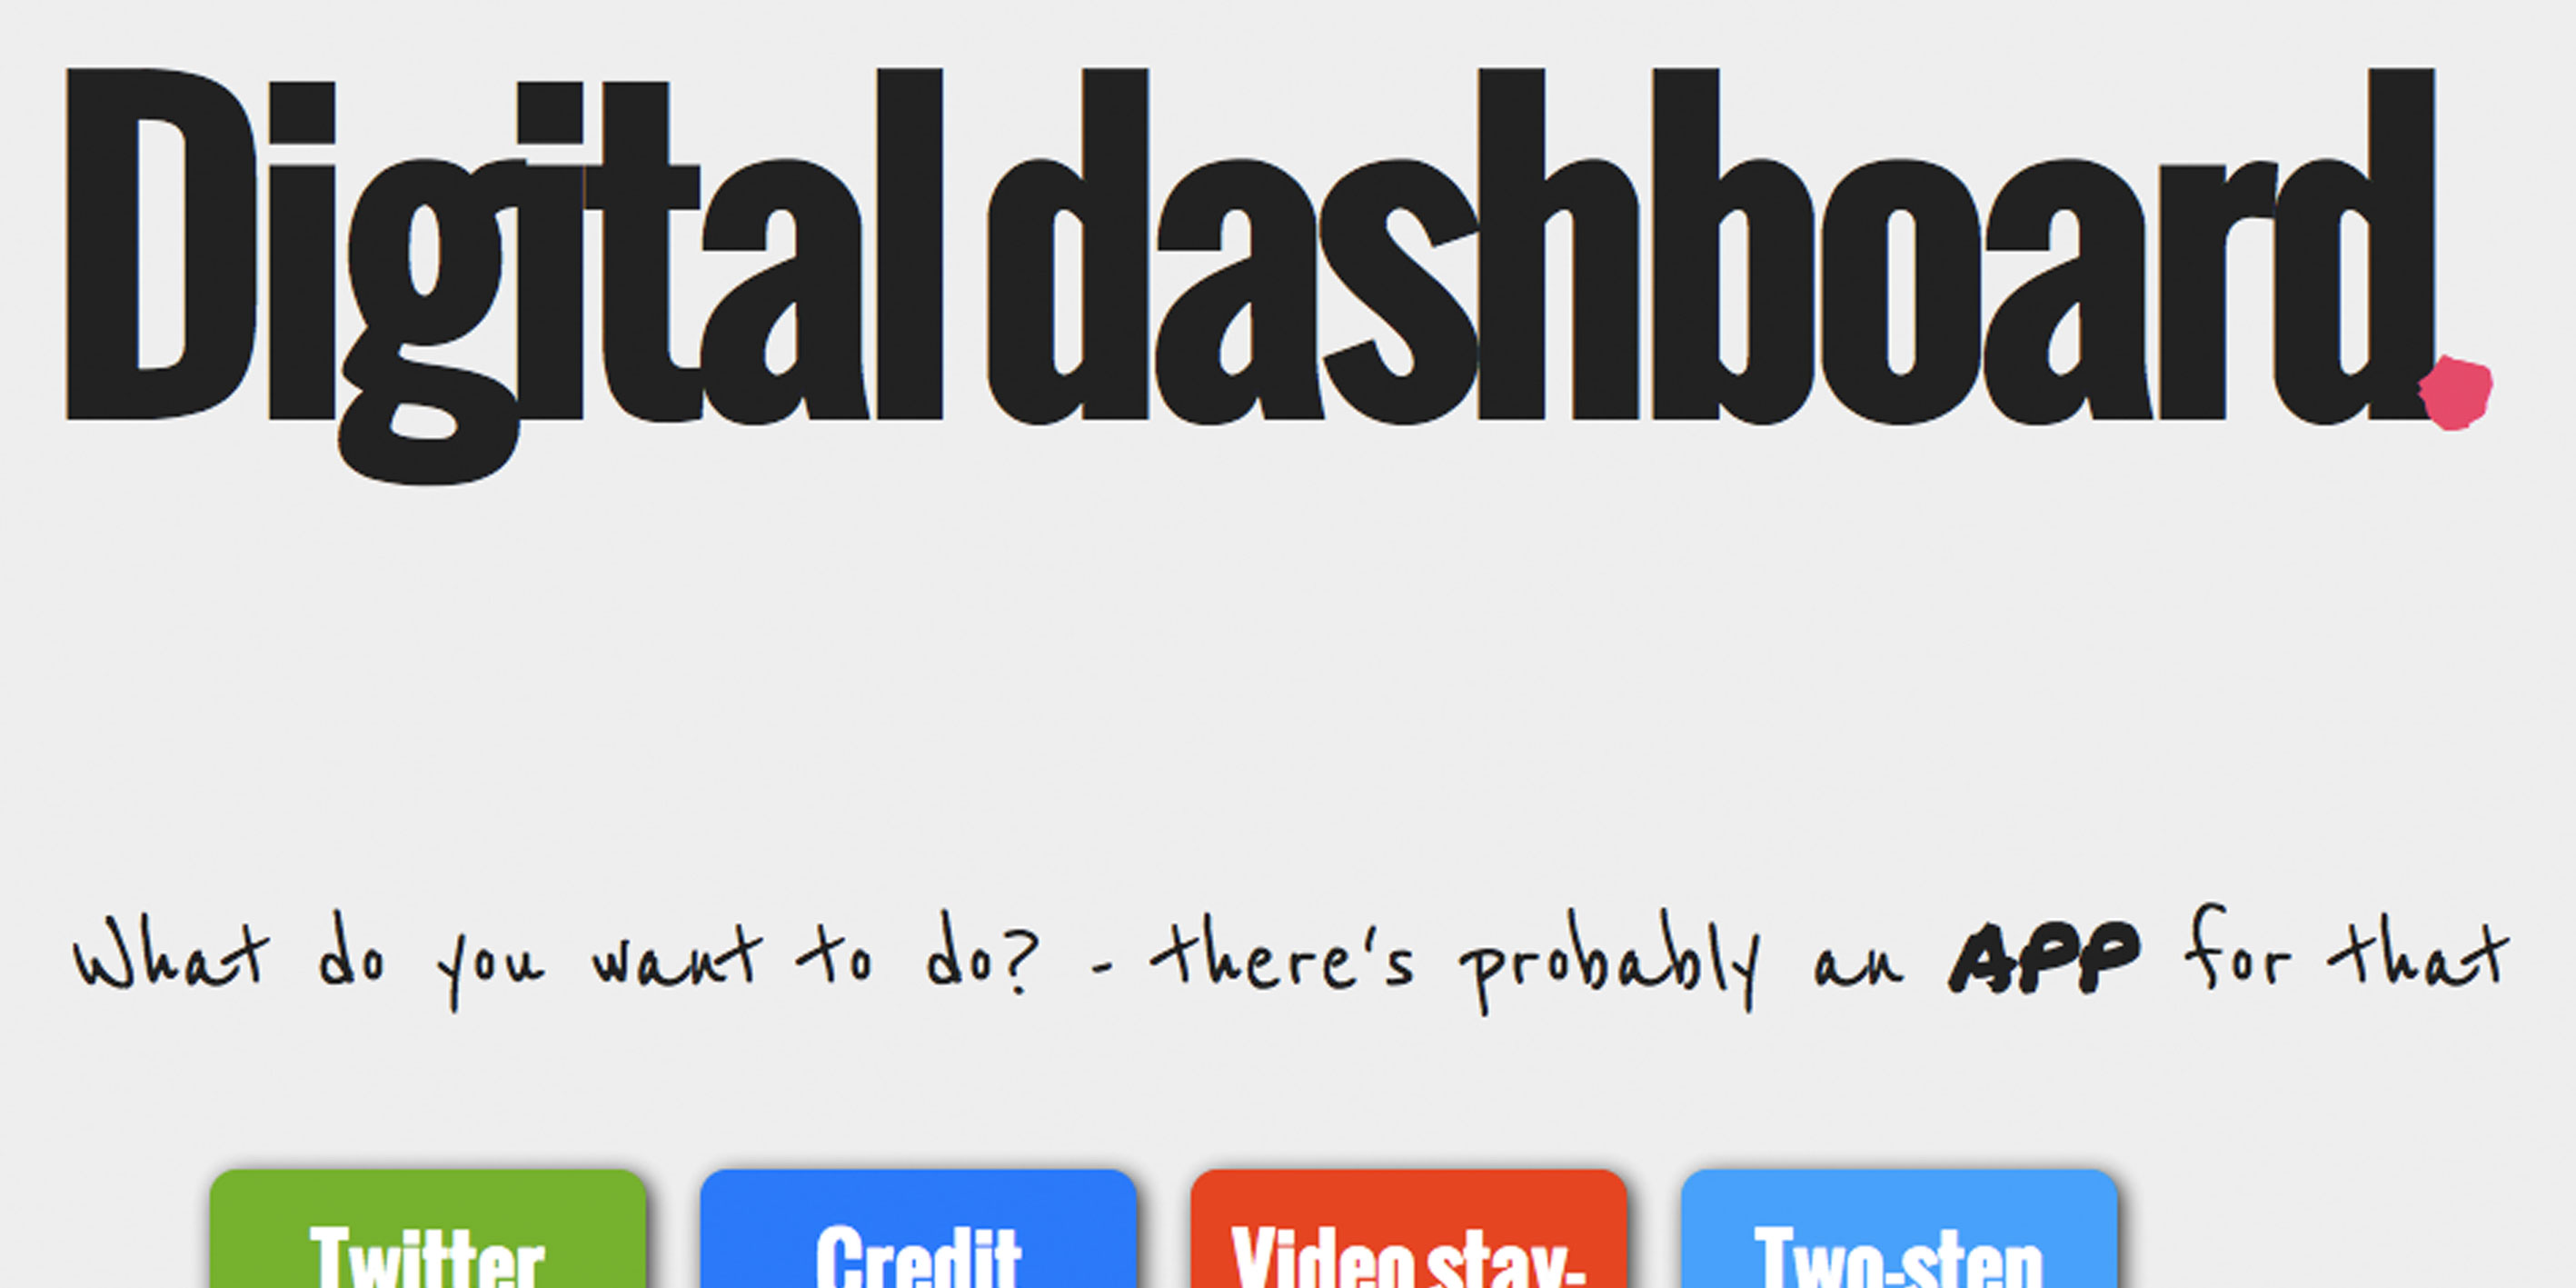 Digital dashboard of journalism tools